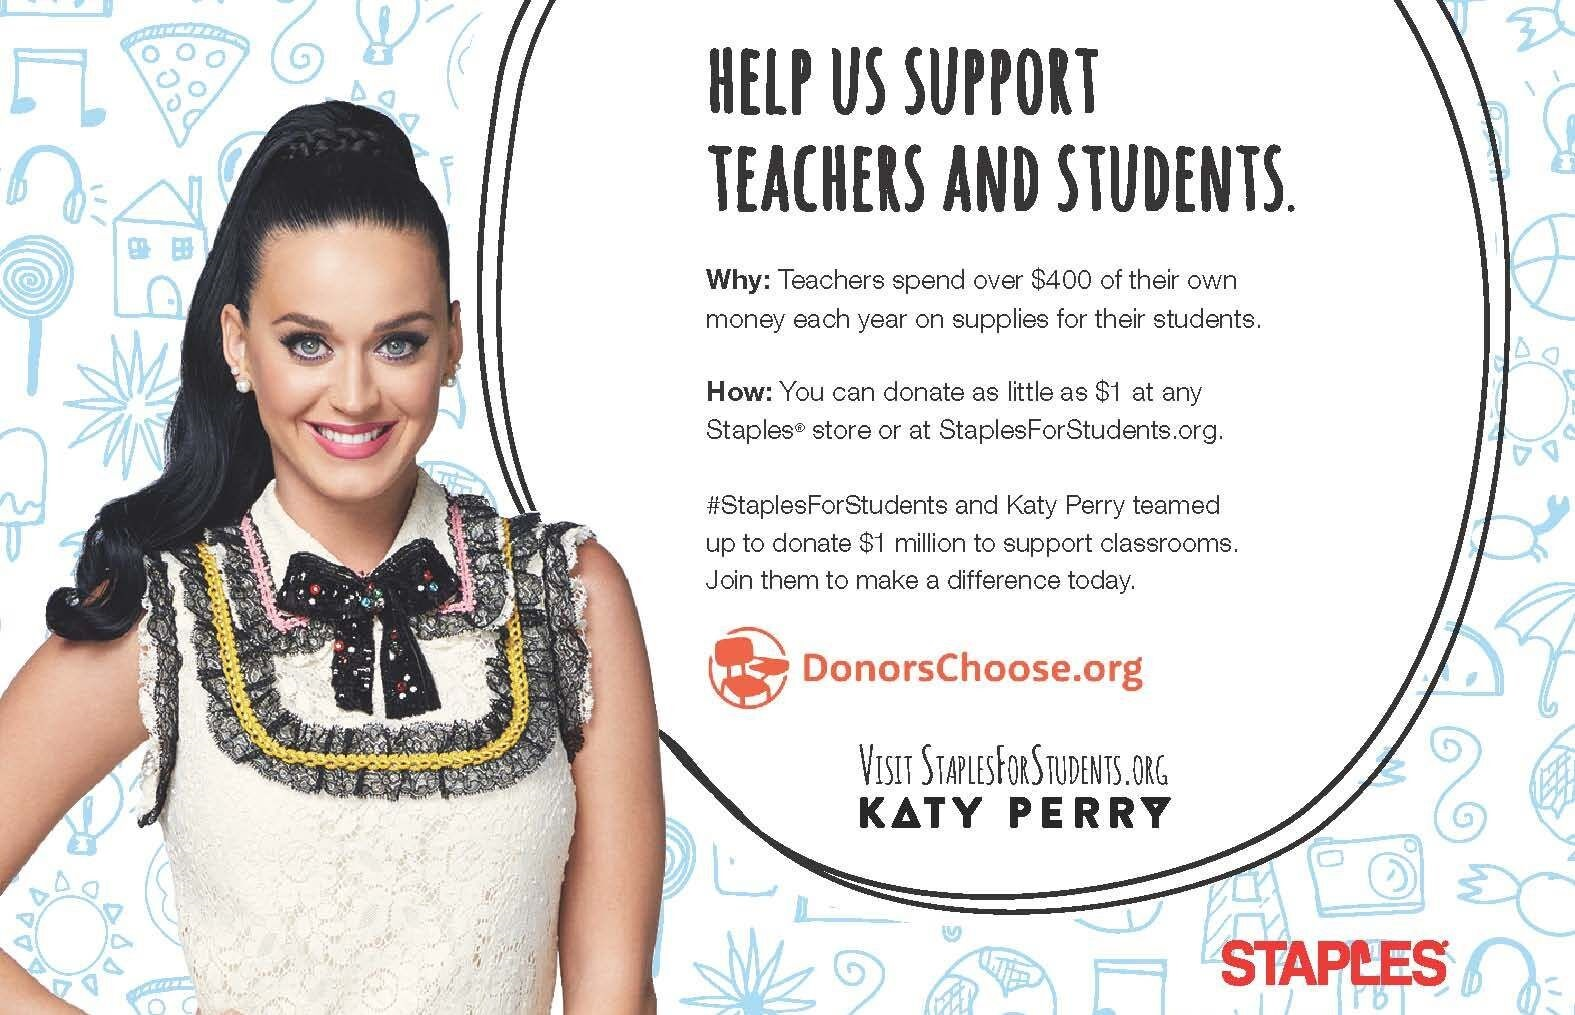 Enter the Staples For Students Sweepstakes